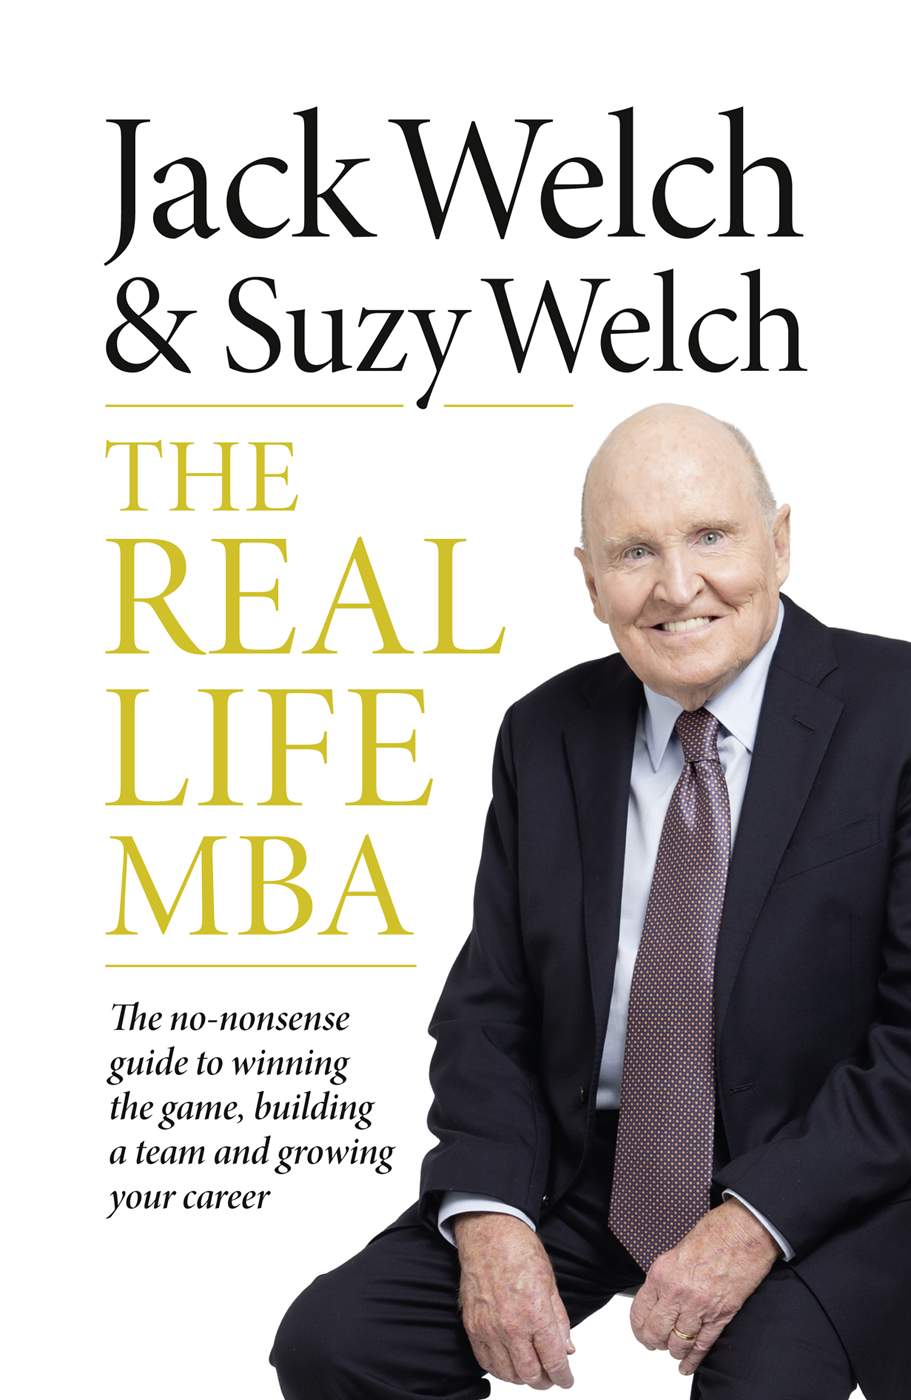 The Real-Life MBA: The no-nonsense guide to winning the game, building a team and growing your career